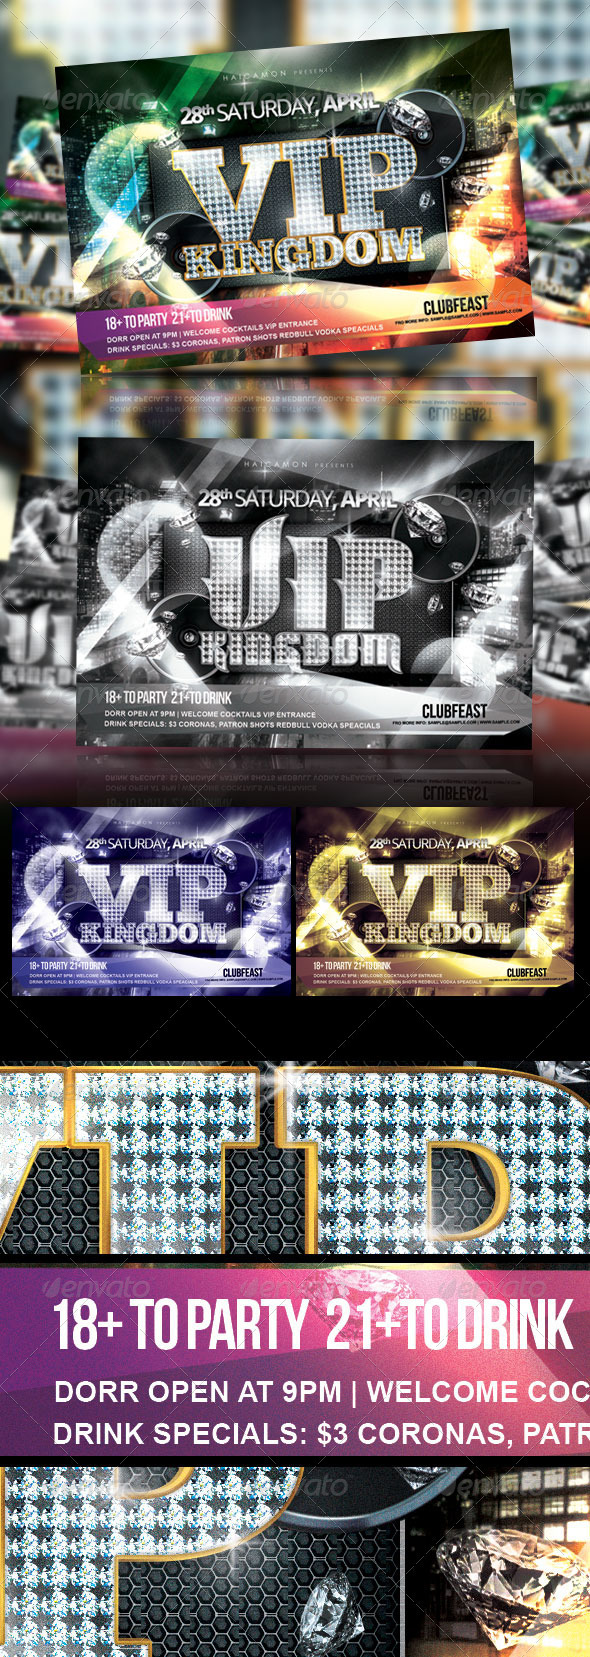 VIP Kingdom Night Party - Events Flyers